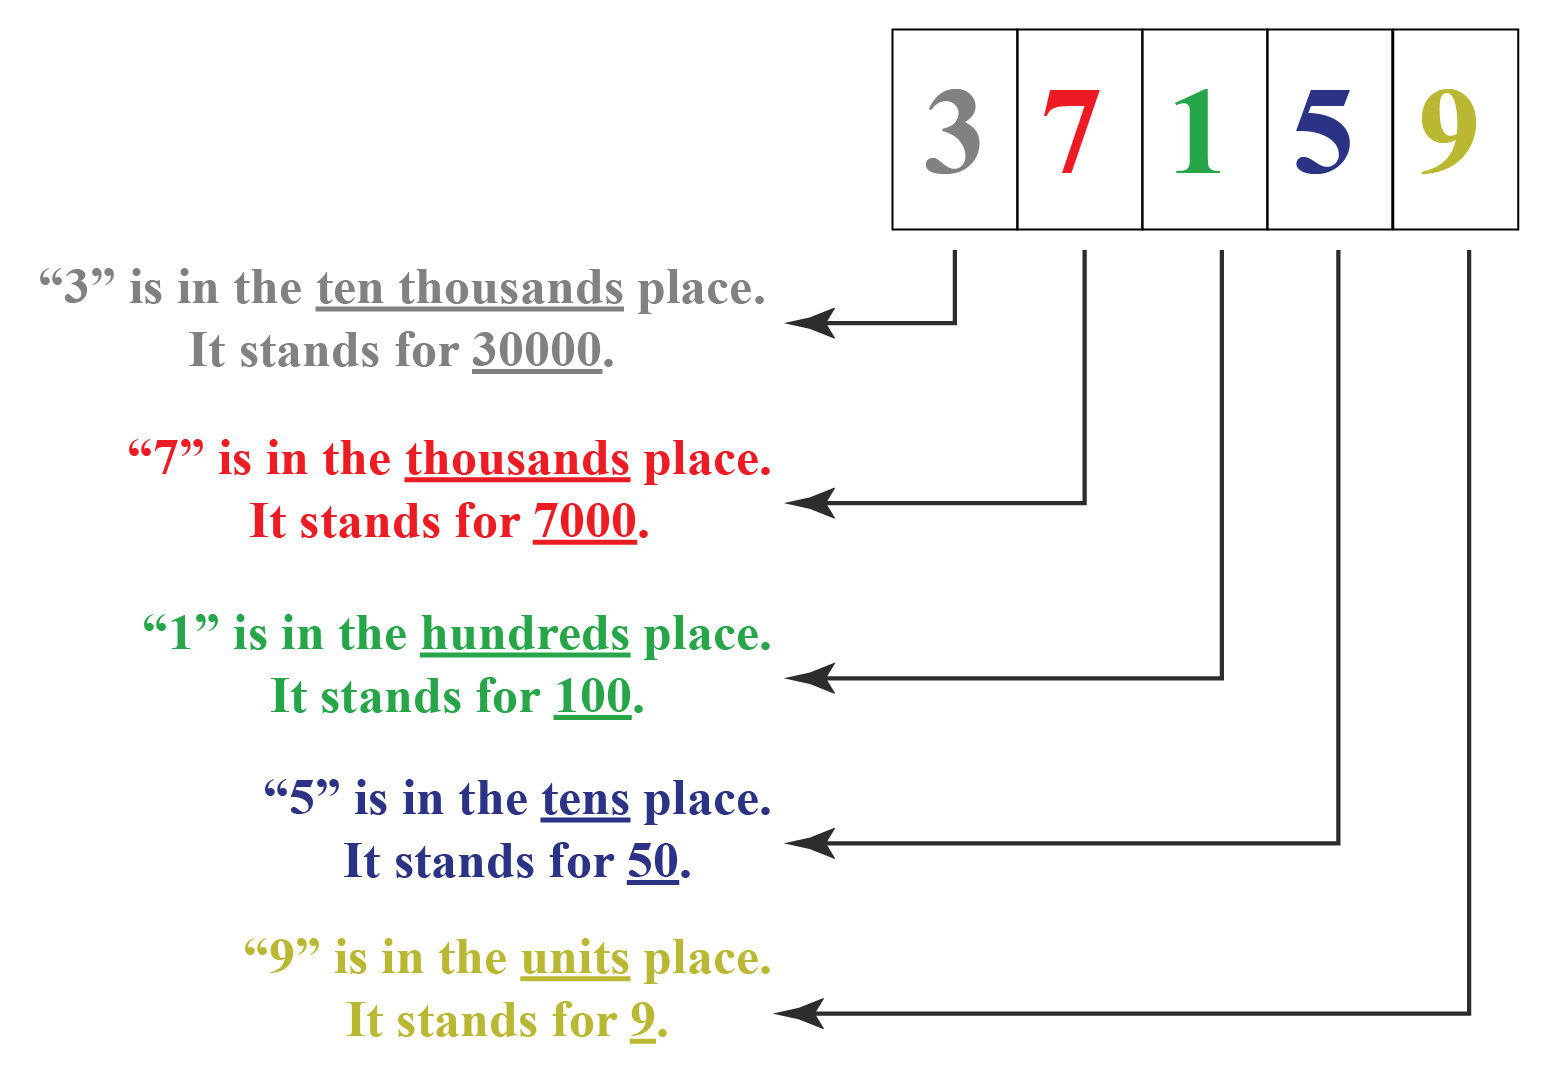 expanded form of the 5 digit number 37159